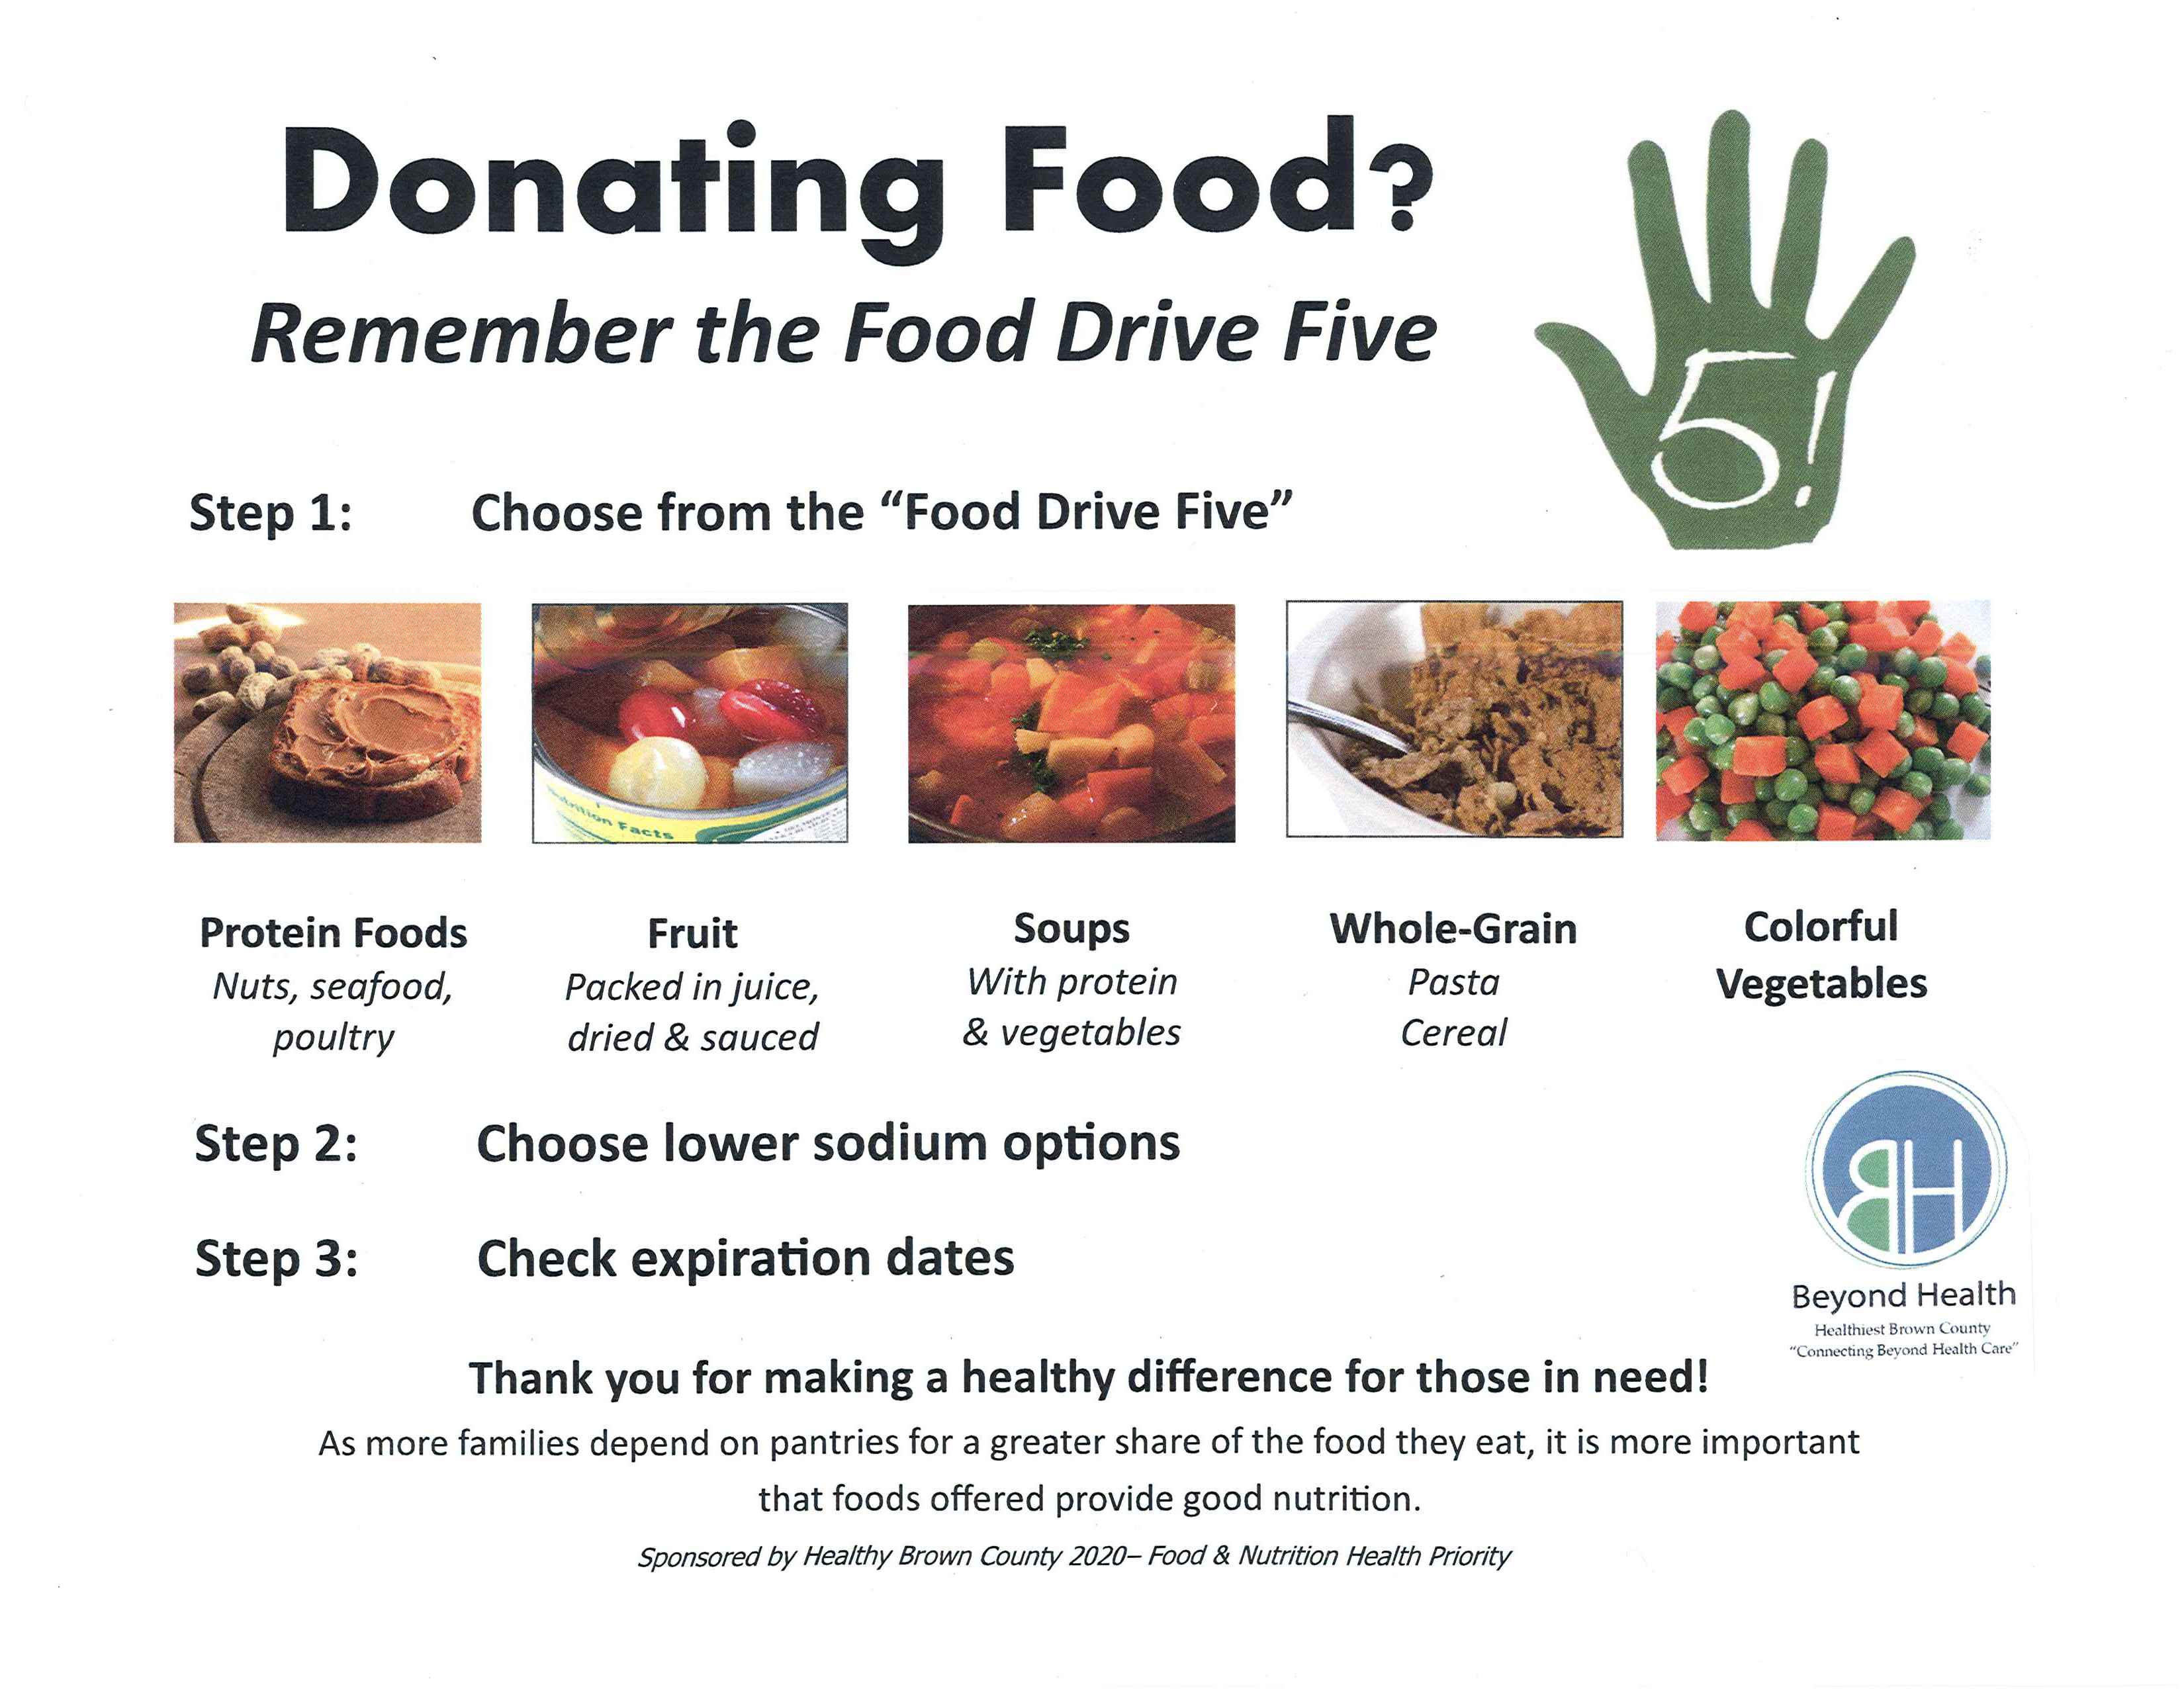 Food Bank Requested Items